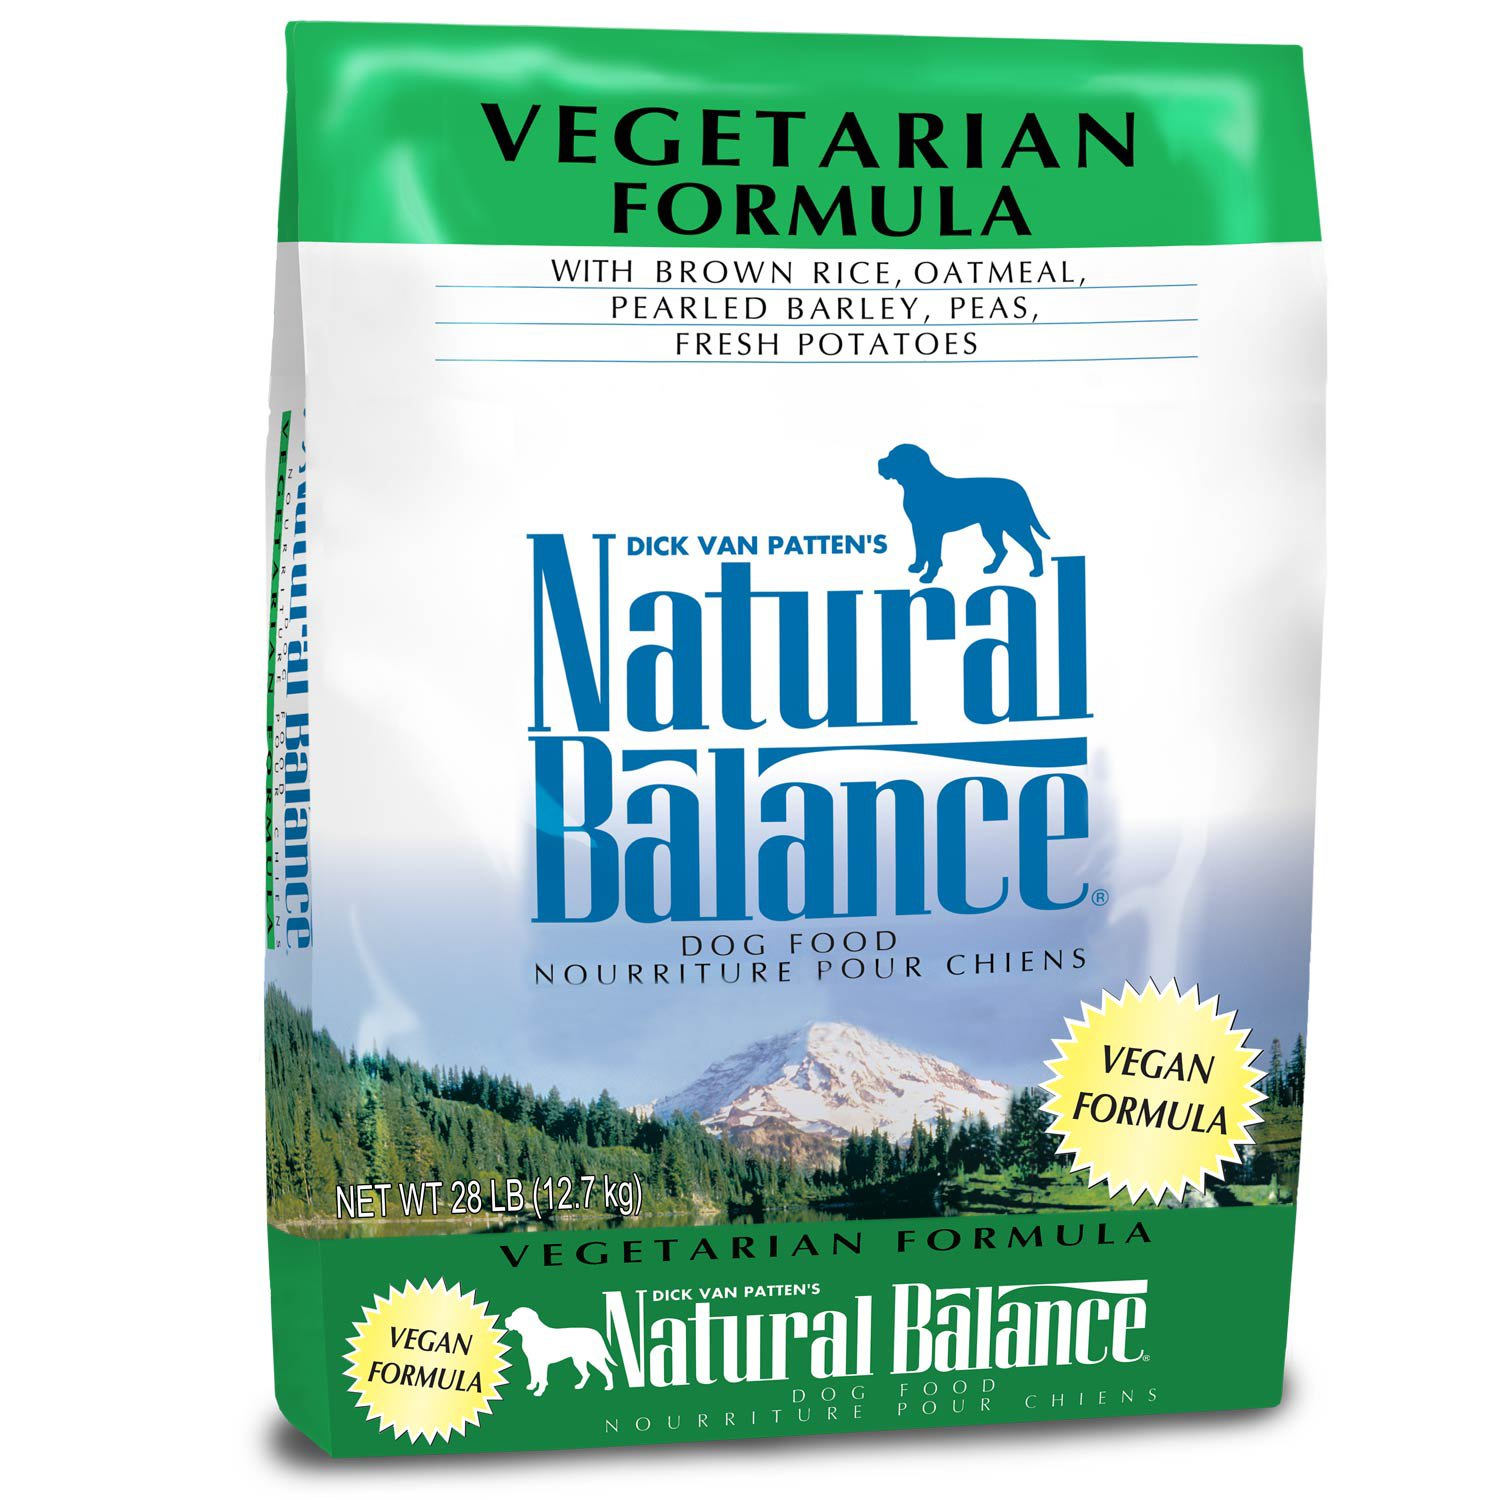 Natural Balance Vegetarian Formula Dog Food 28 lbs.